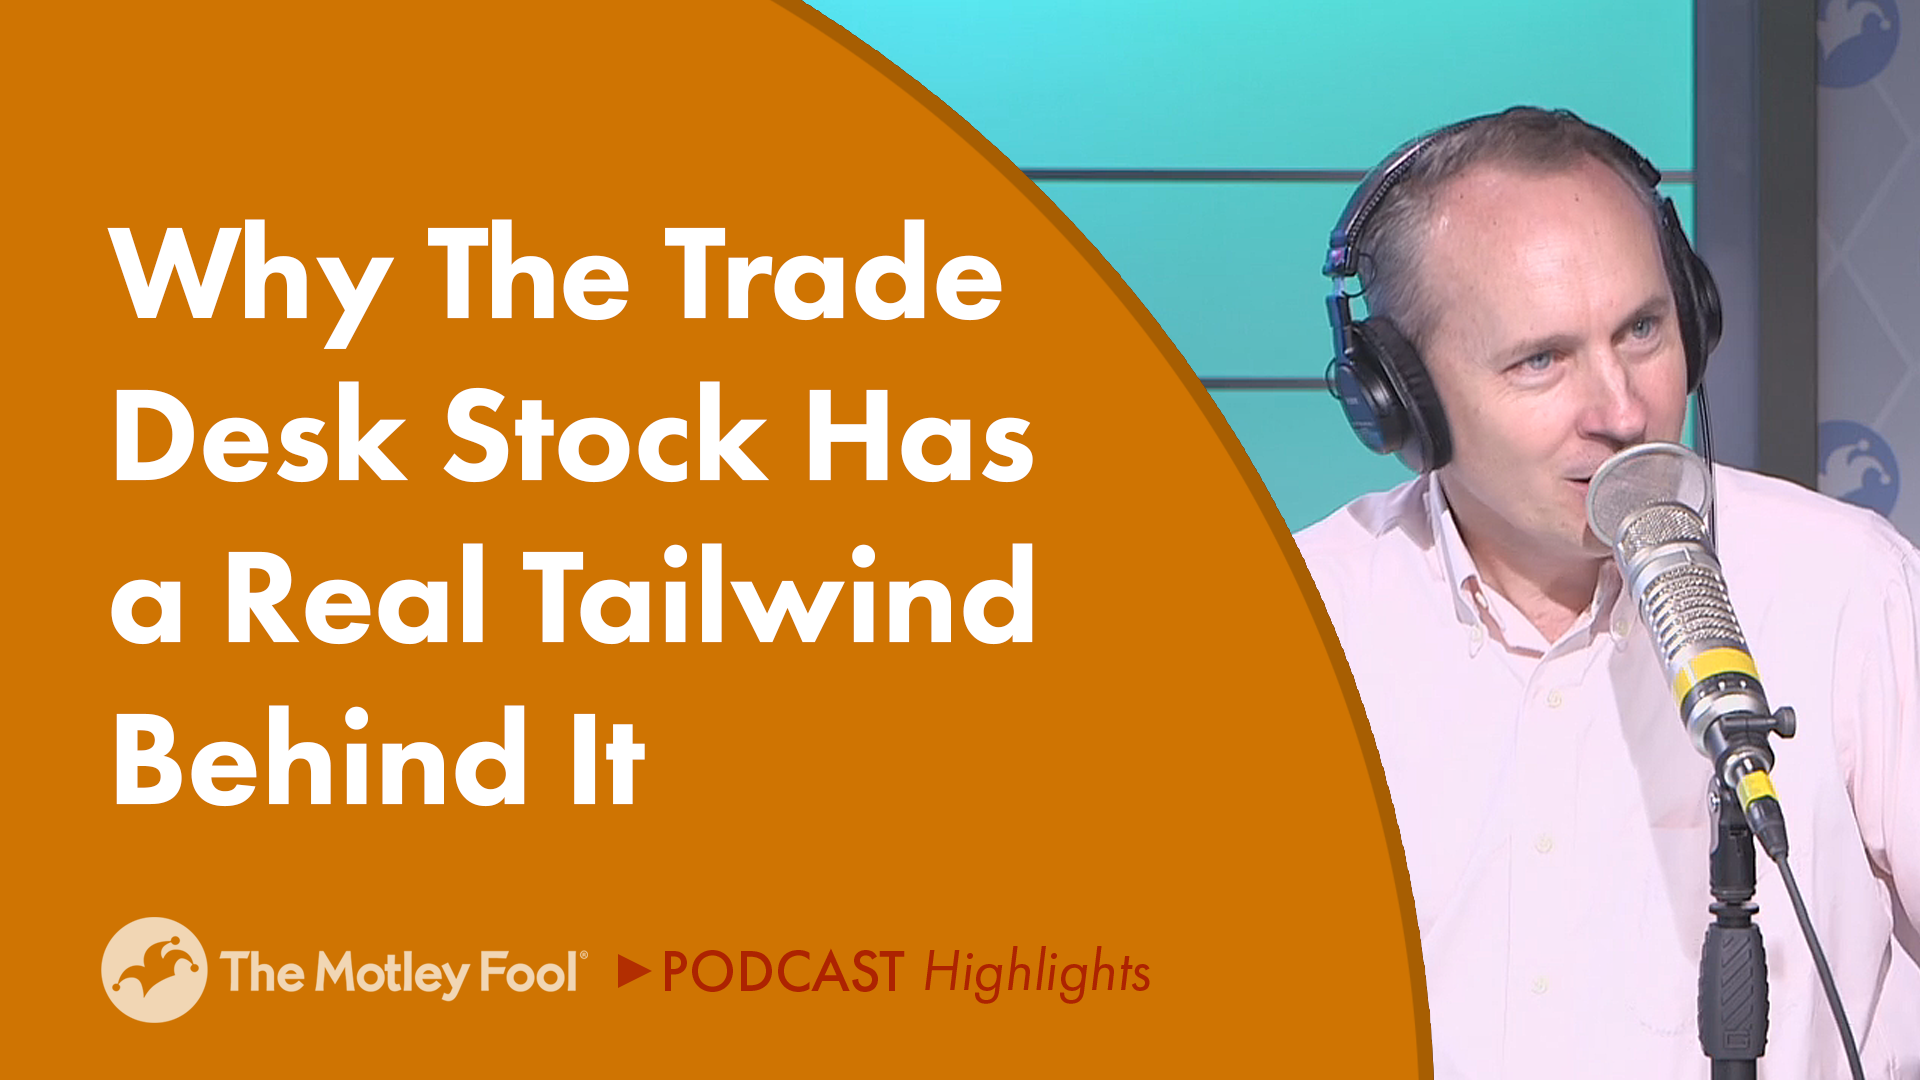 Why The Trade Desk Stock Has a Real Tailwind Behind It